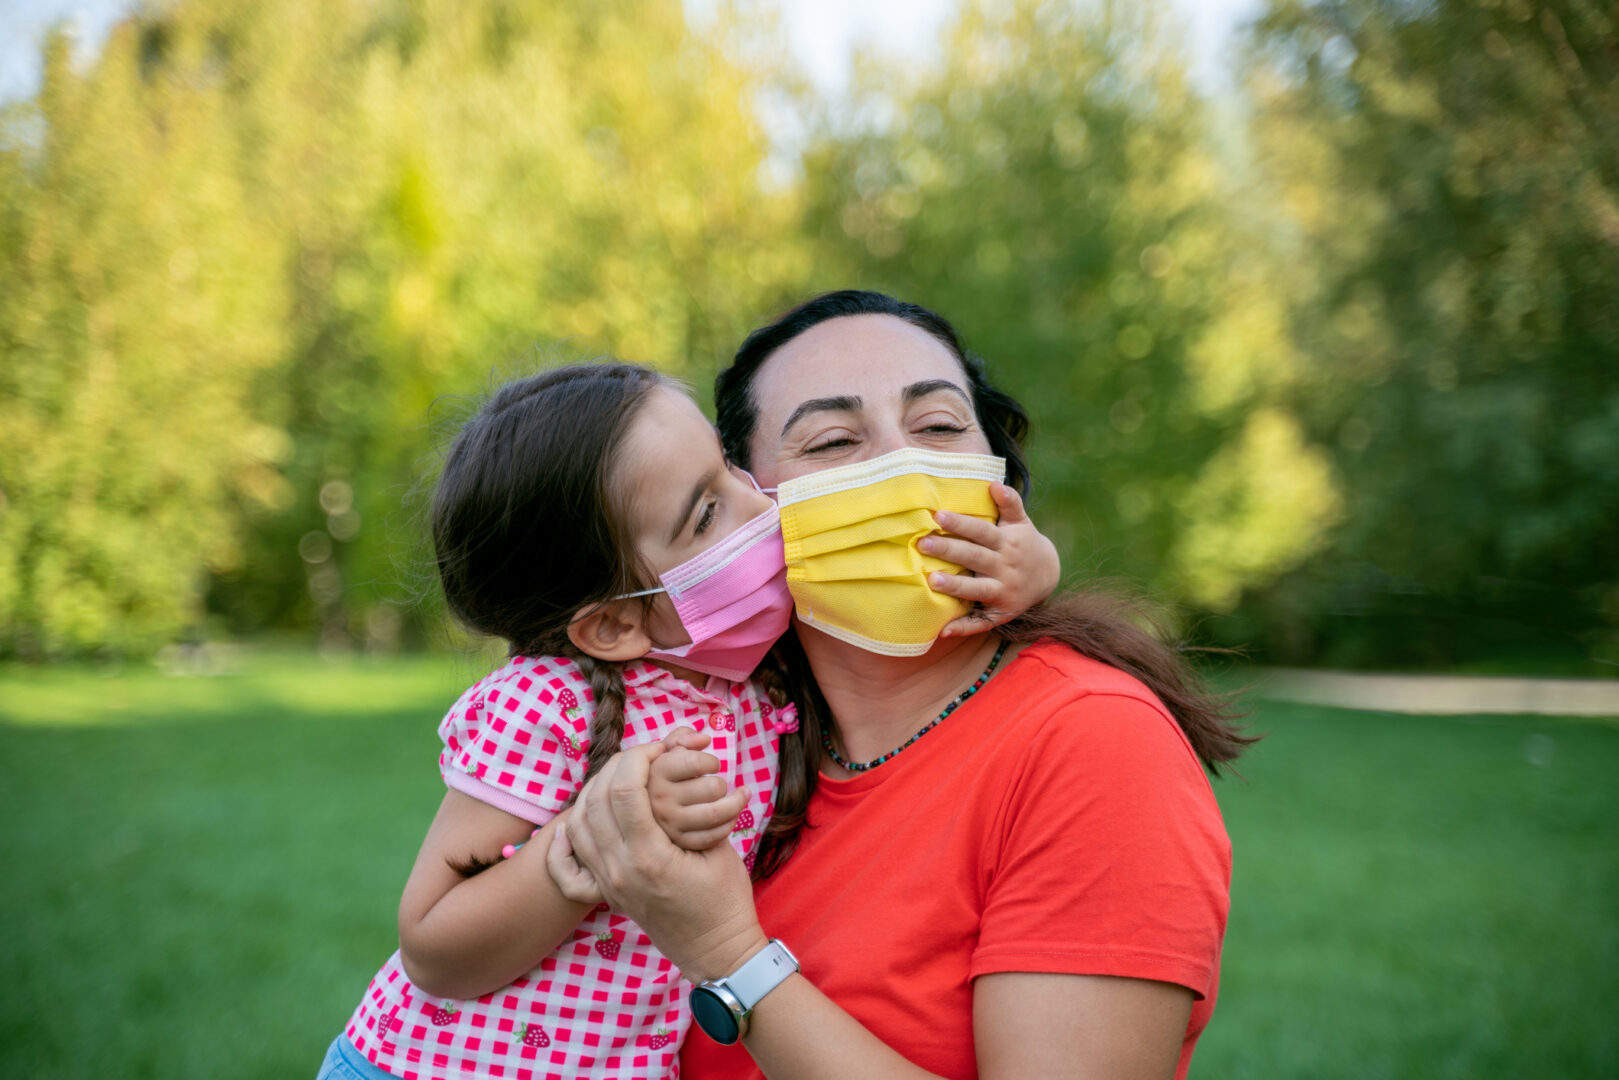 Here's what questions to ask a nanny or babysitter during covid